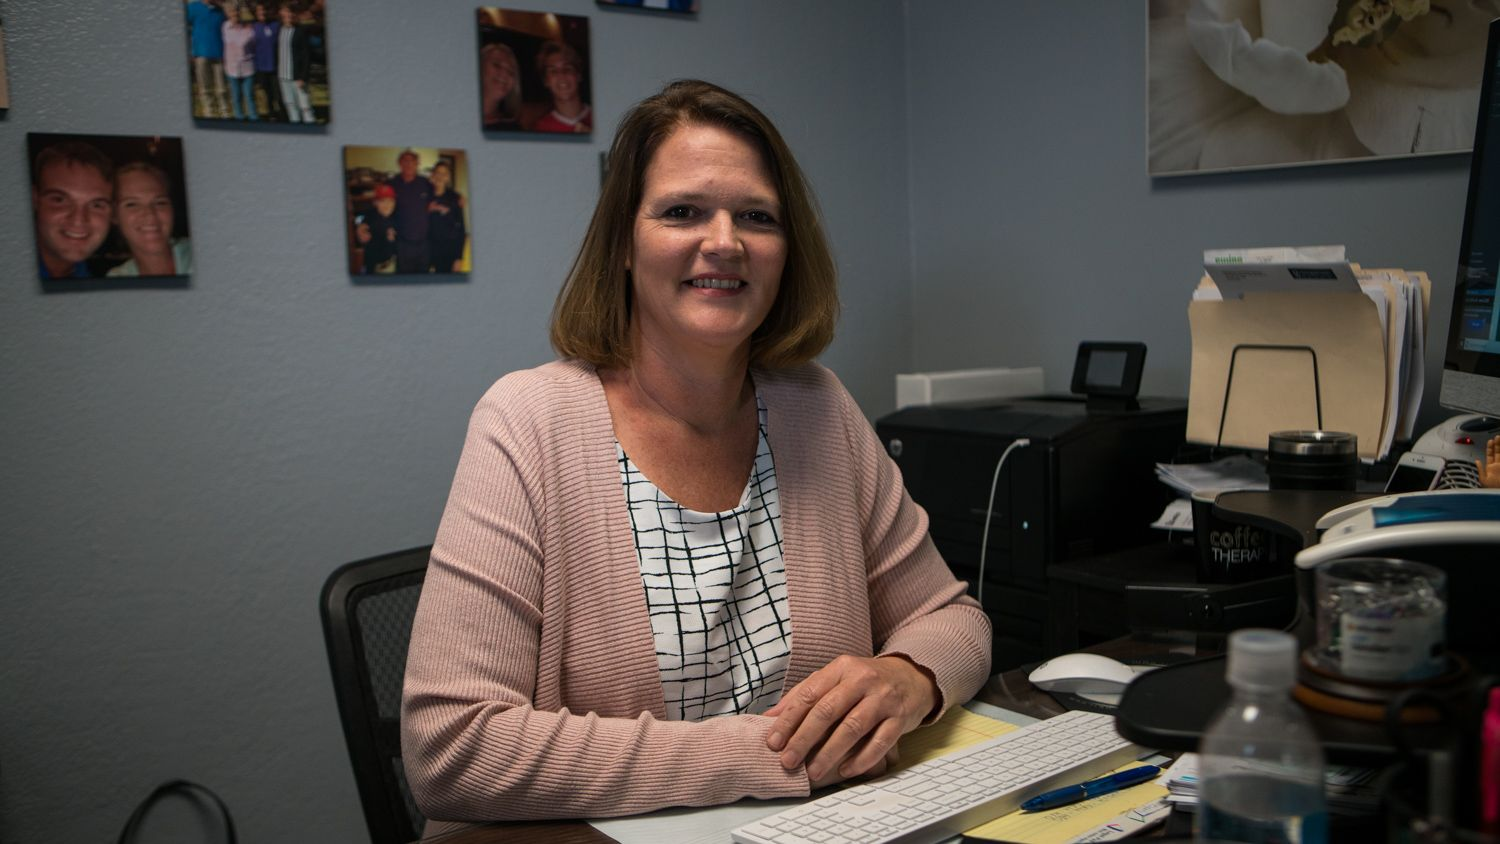 Stacy Gorsuch, Grassperson's Accounting & HR Manager